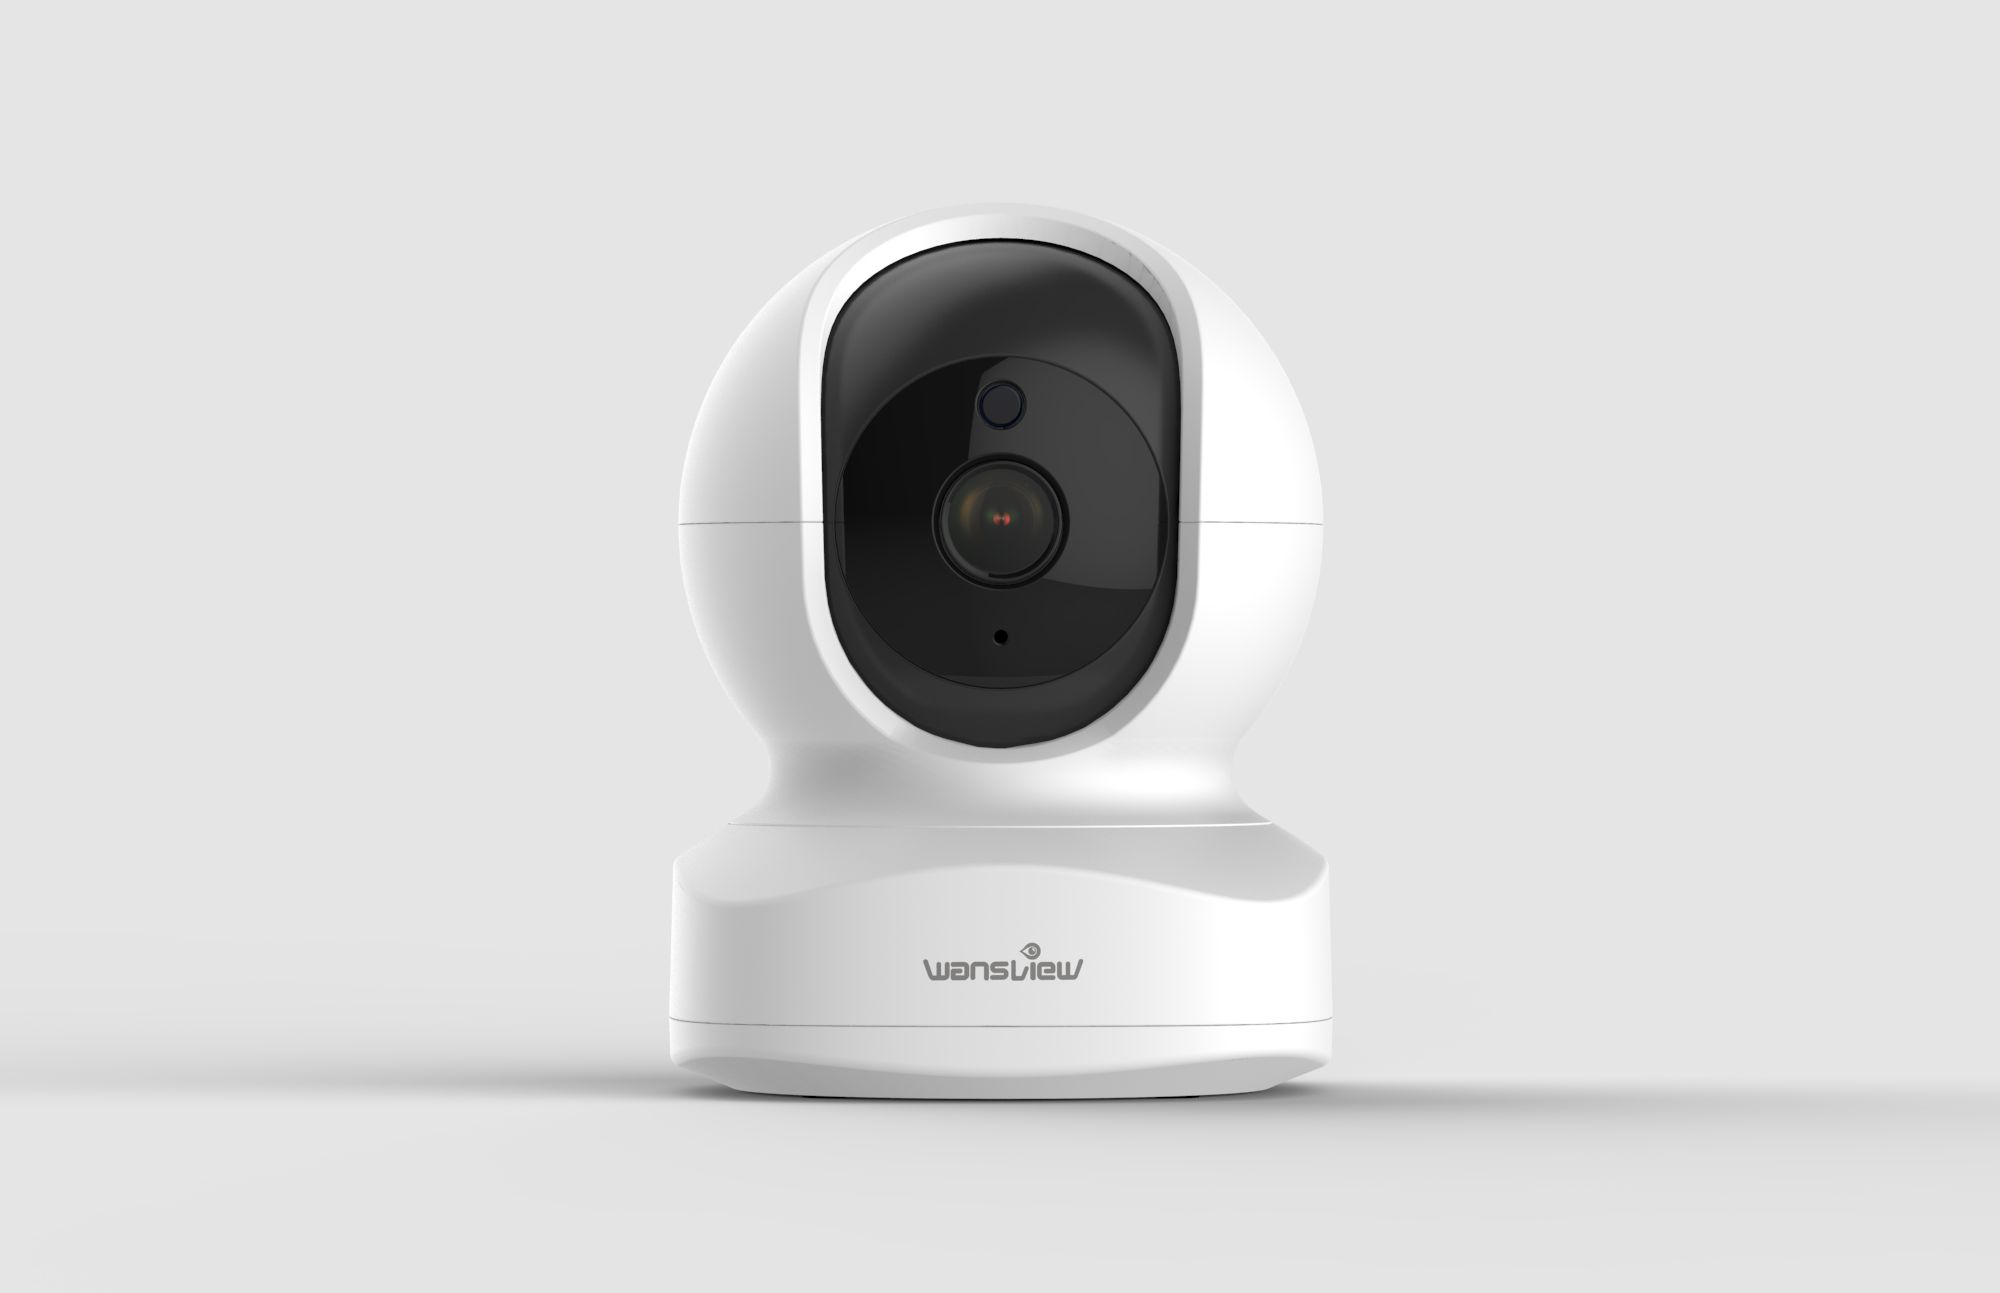 How does a surveillance camera monitor remotely?